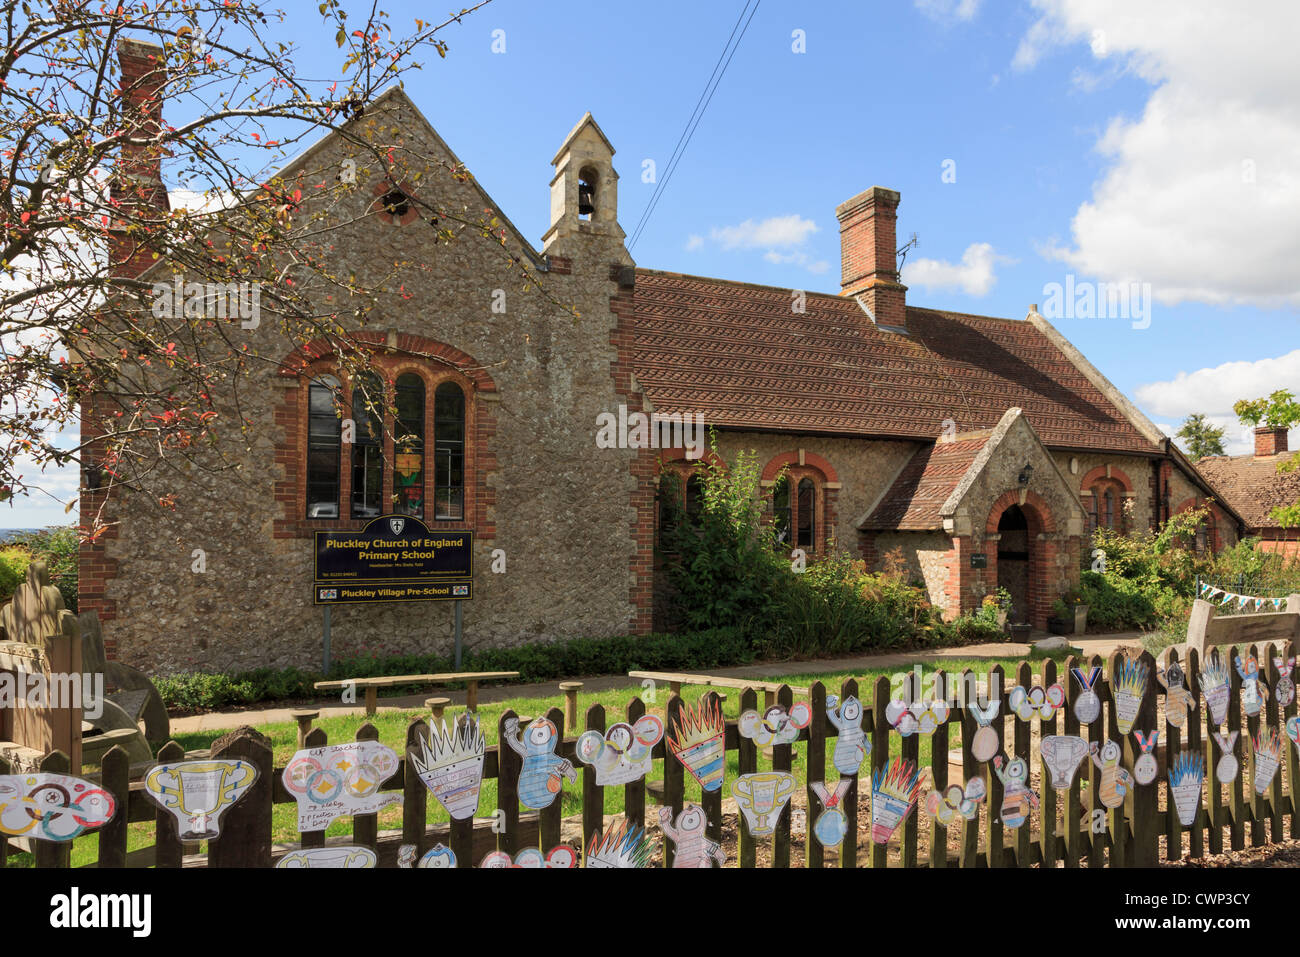 Traditional village Church of England Primary School building decorated with drawings of Olympics 2012 Pluckley - Stock Image